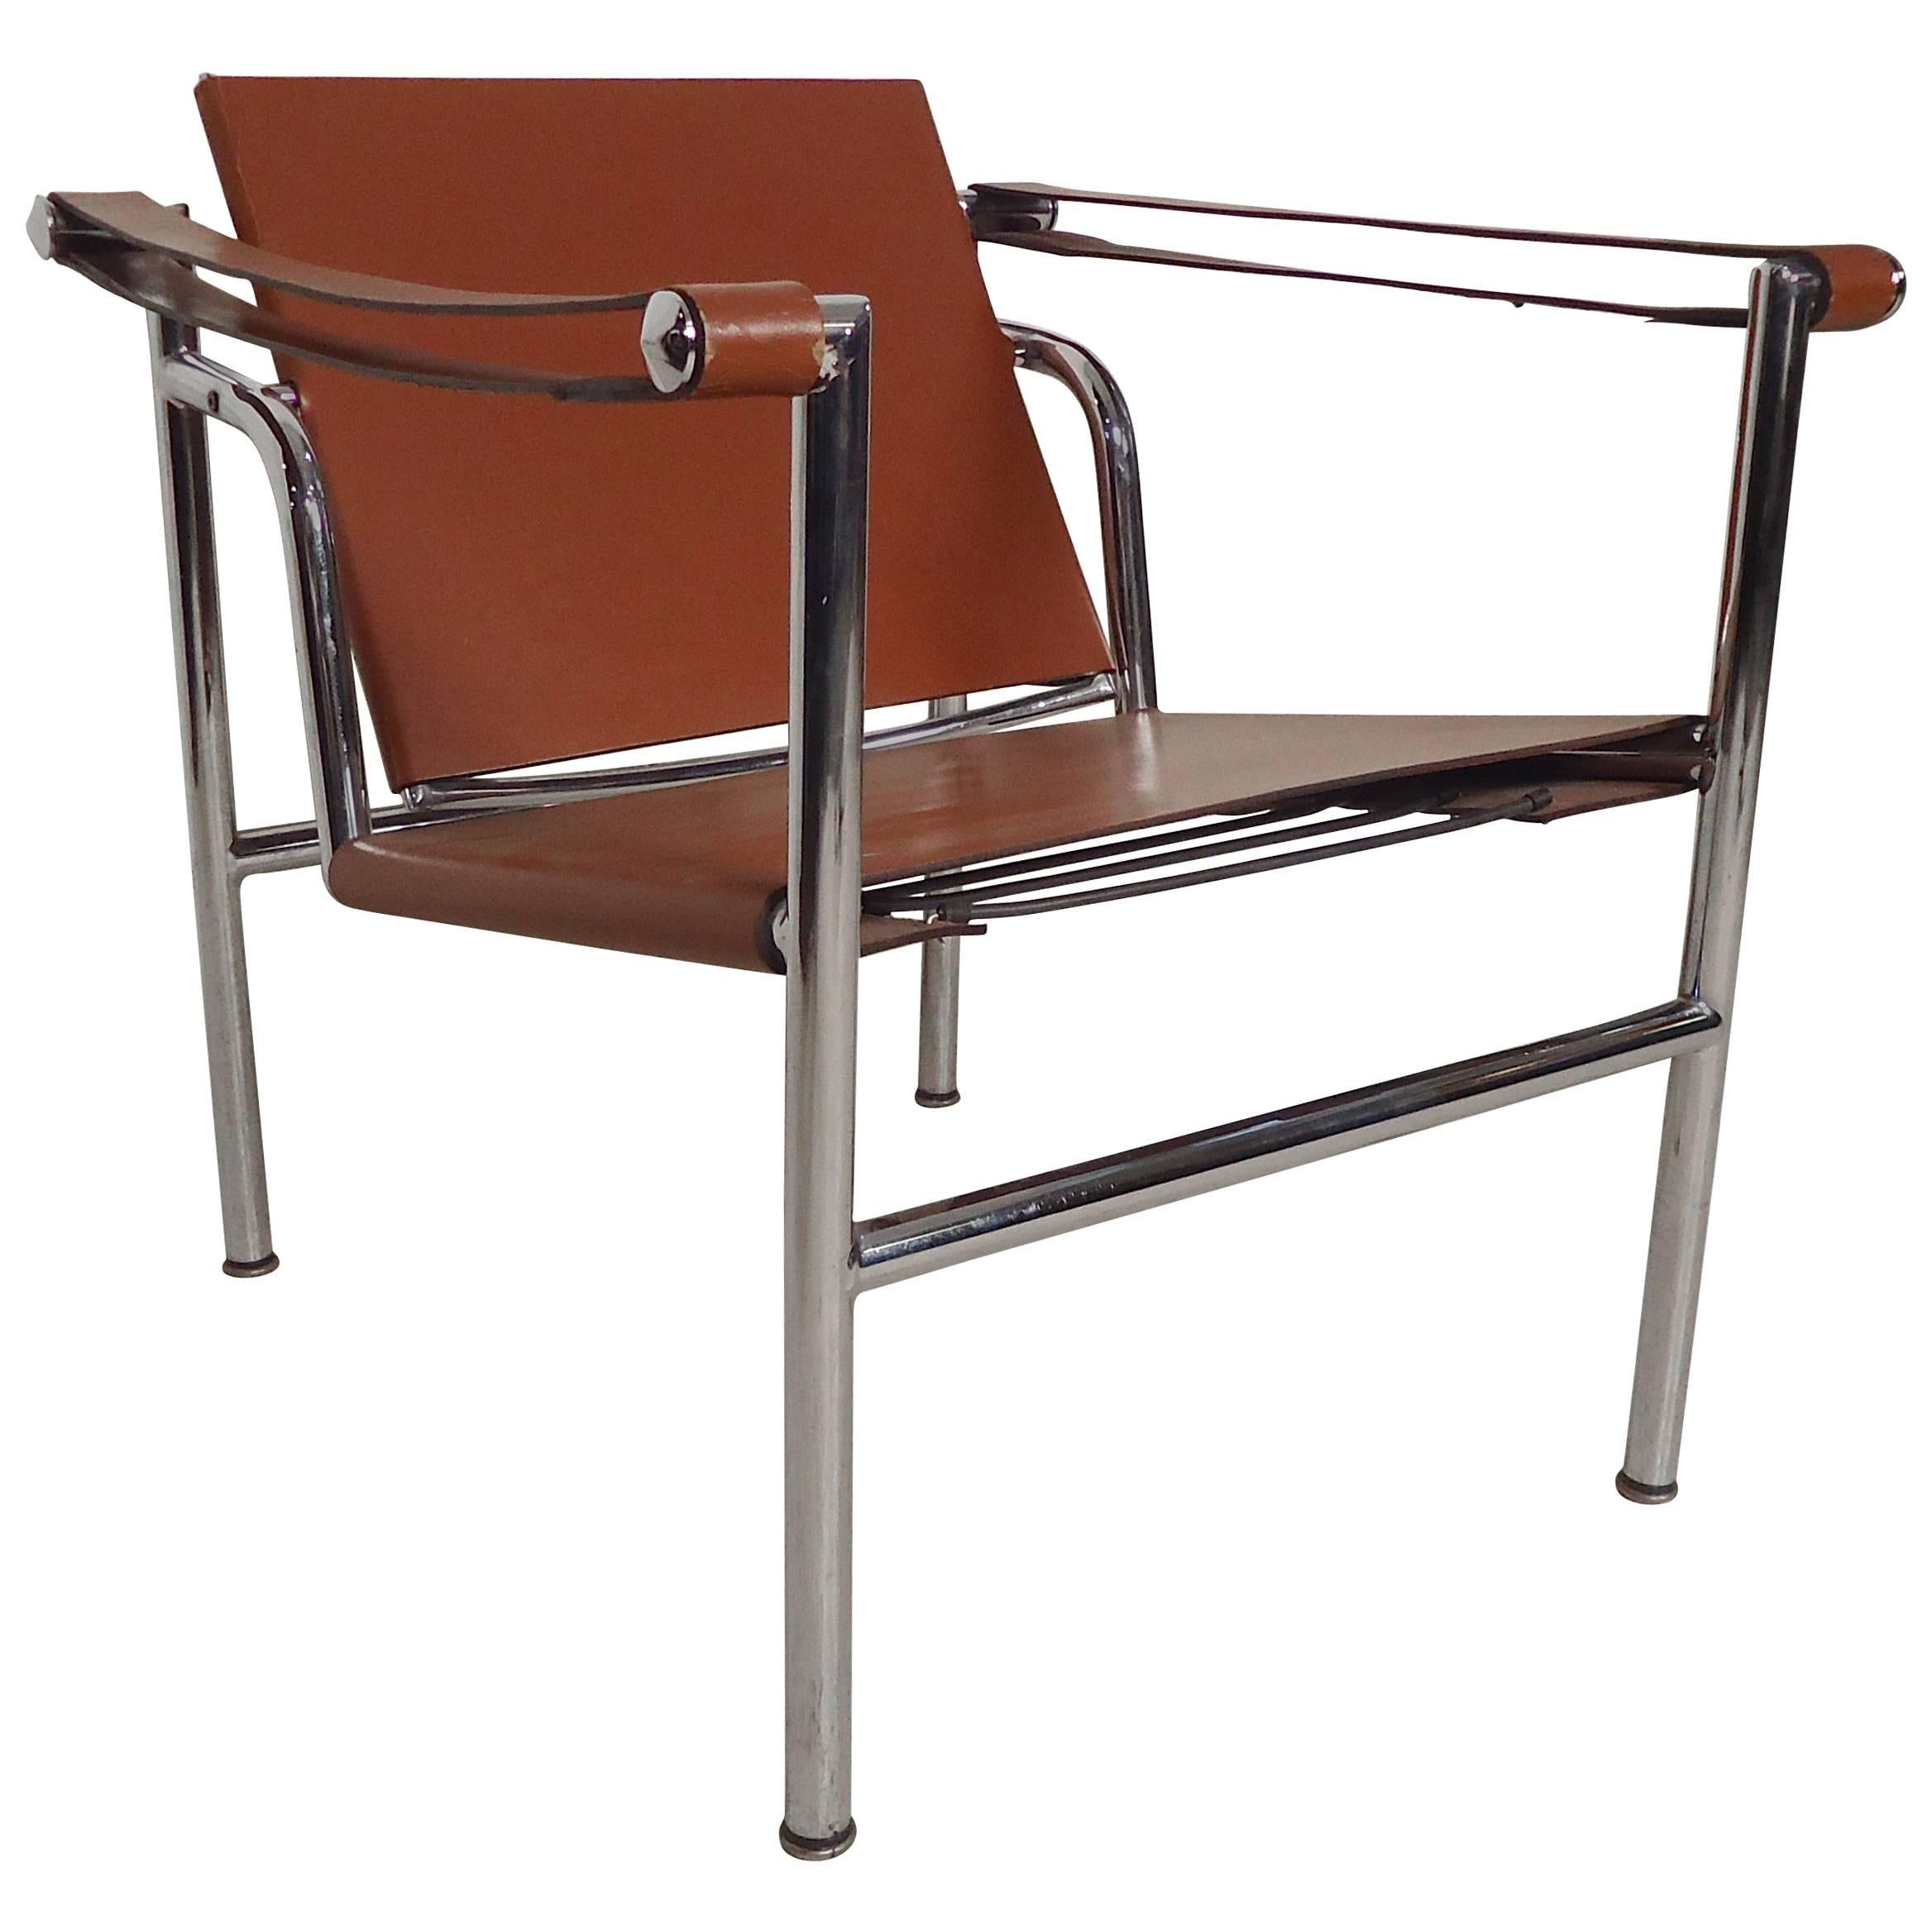 Le Corbusier Furniture: Chairs, Sofas, Tables \u0026 More - 62 For Sale ...